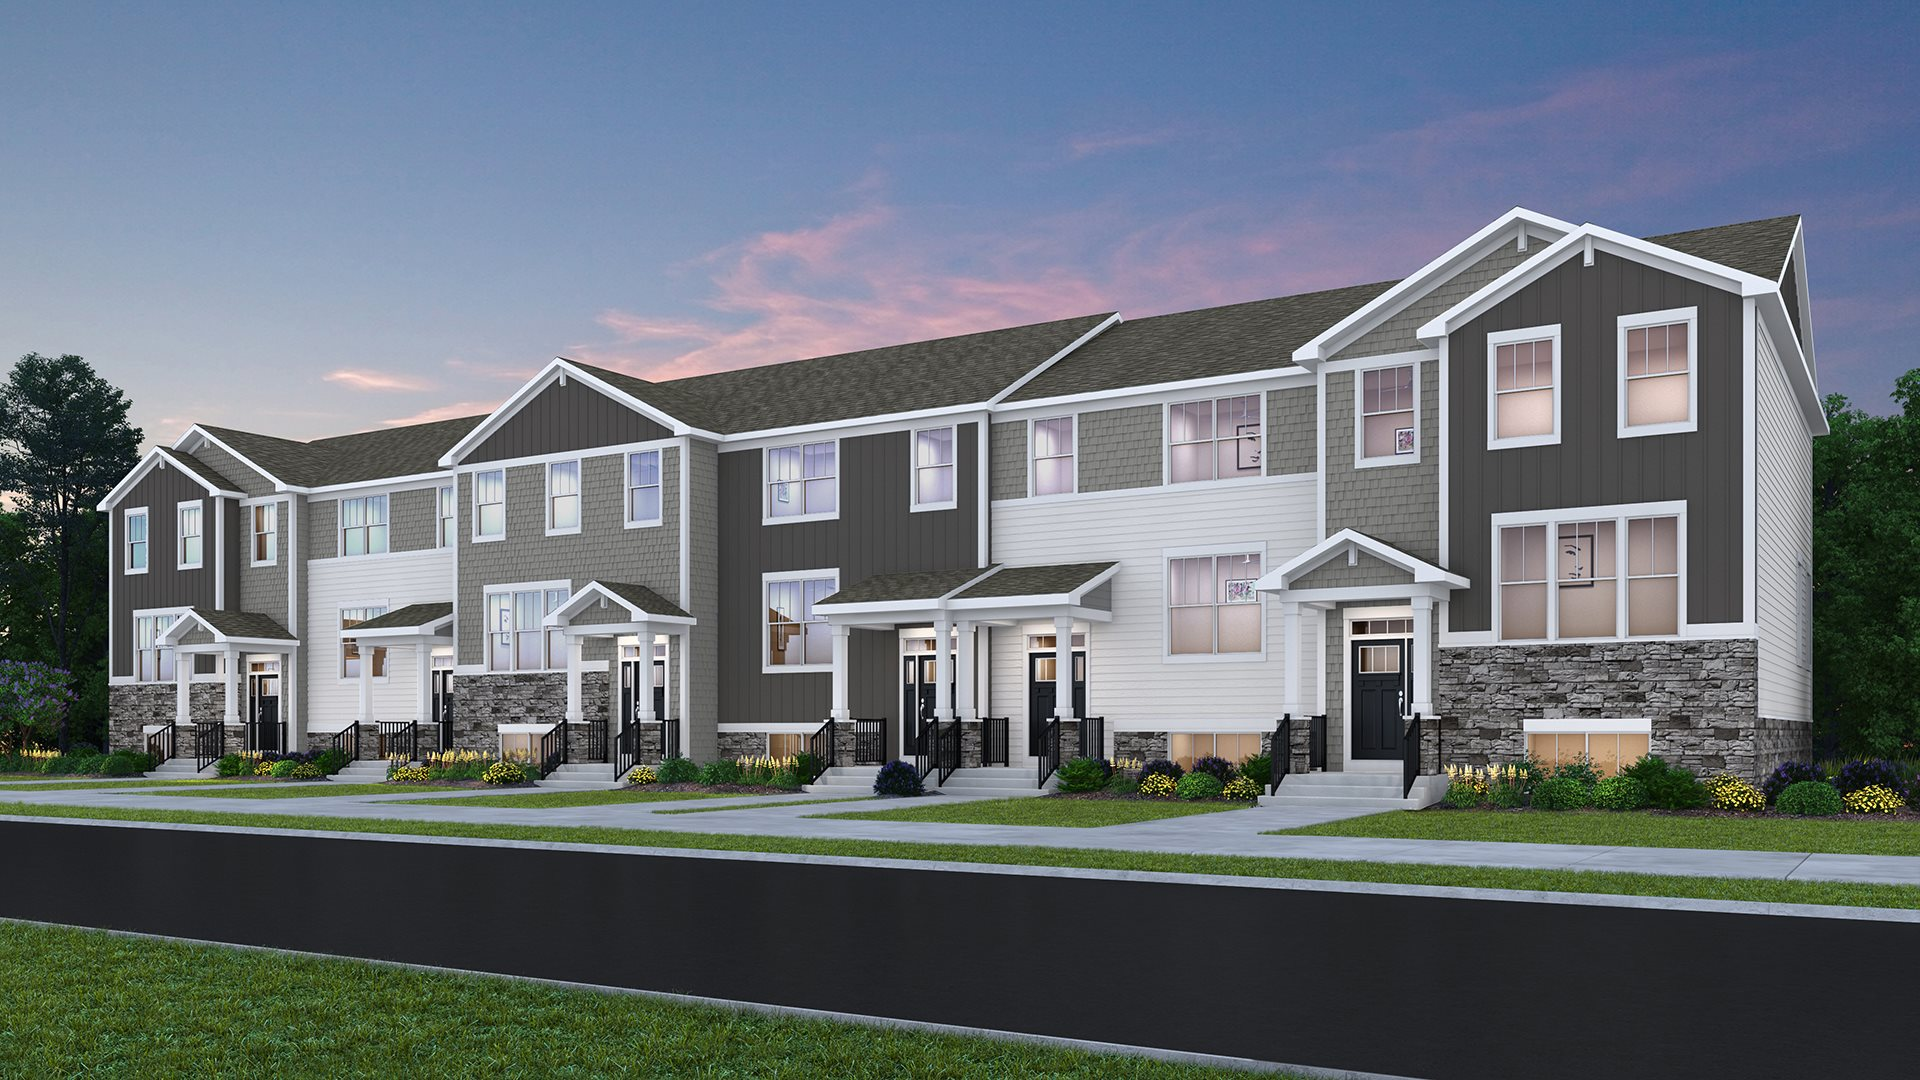 New Homes for sale in South Elgin, Illinois by Lennar featuring our Urban Townhome Collection.